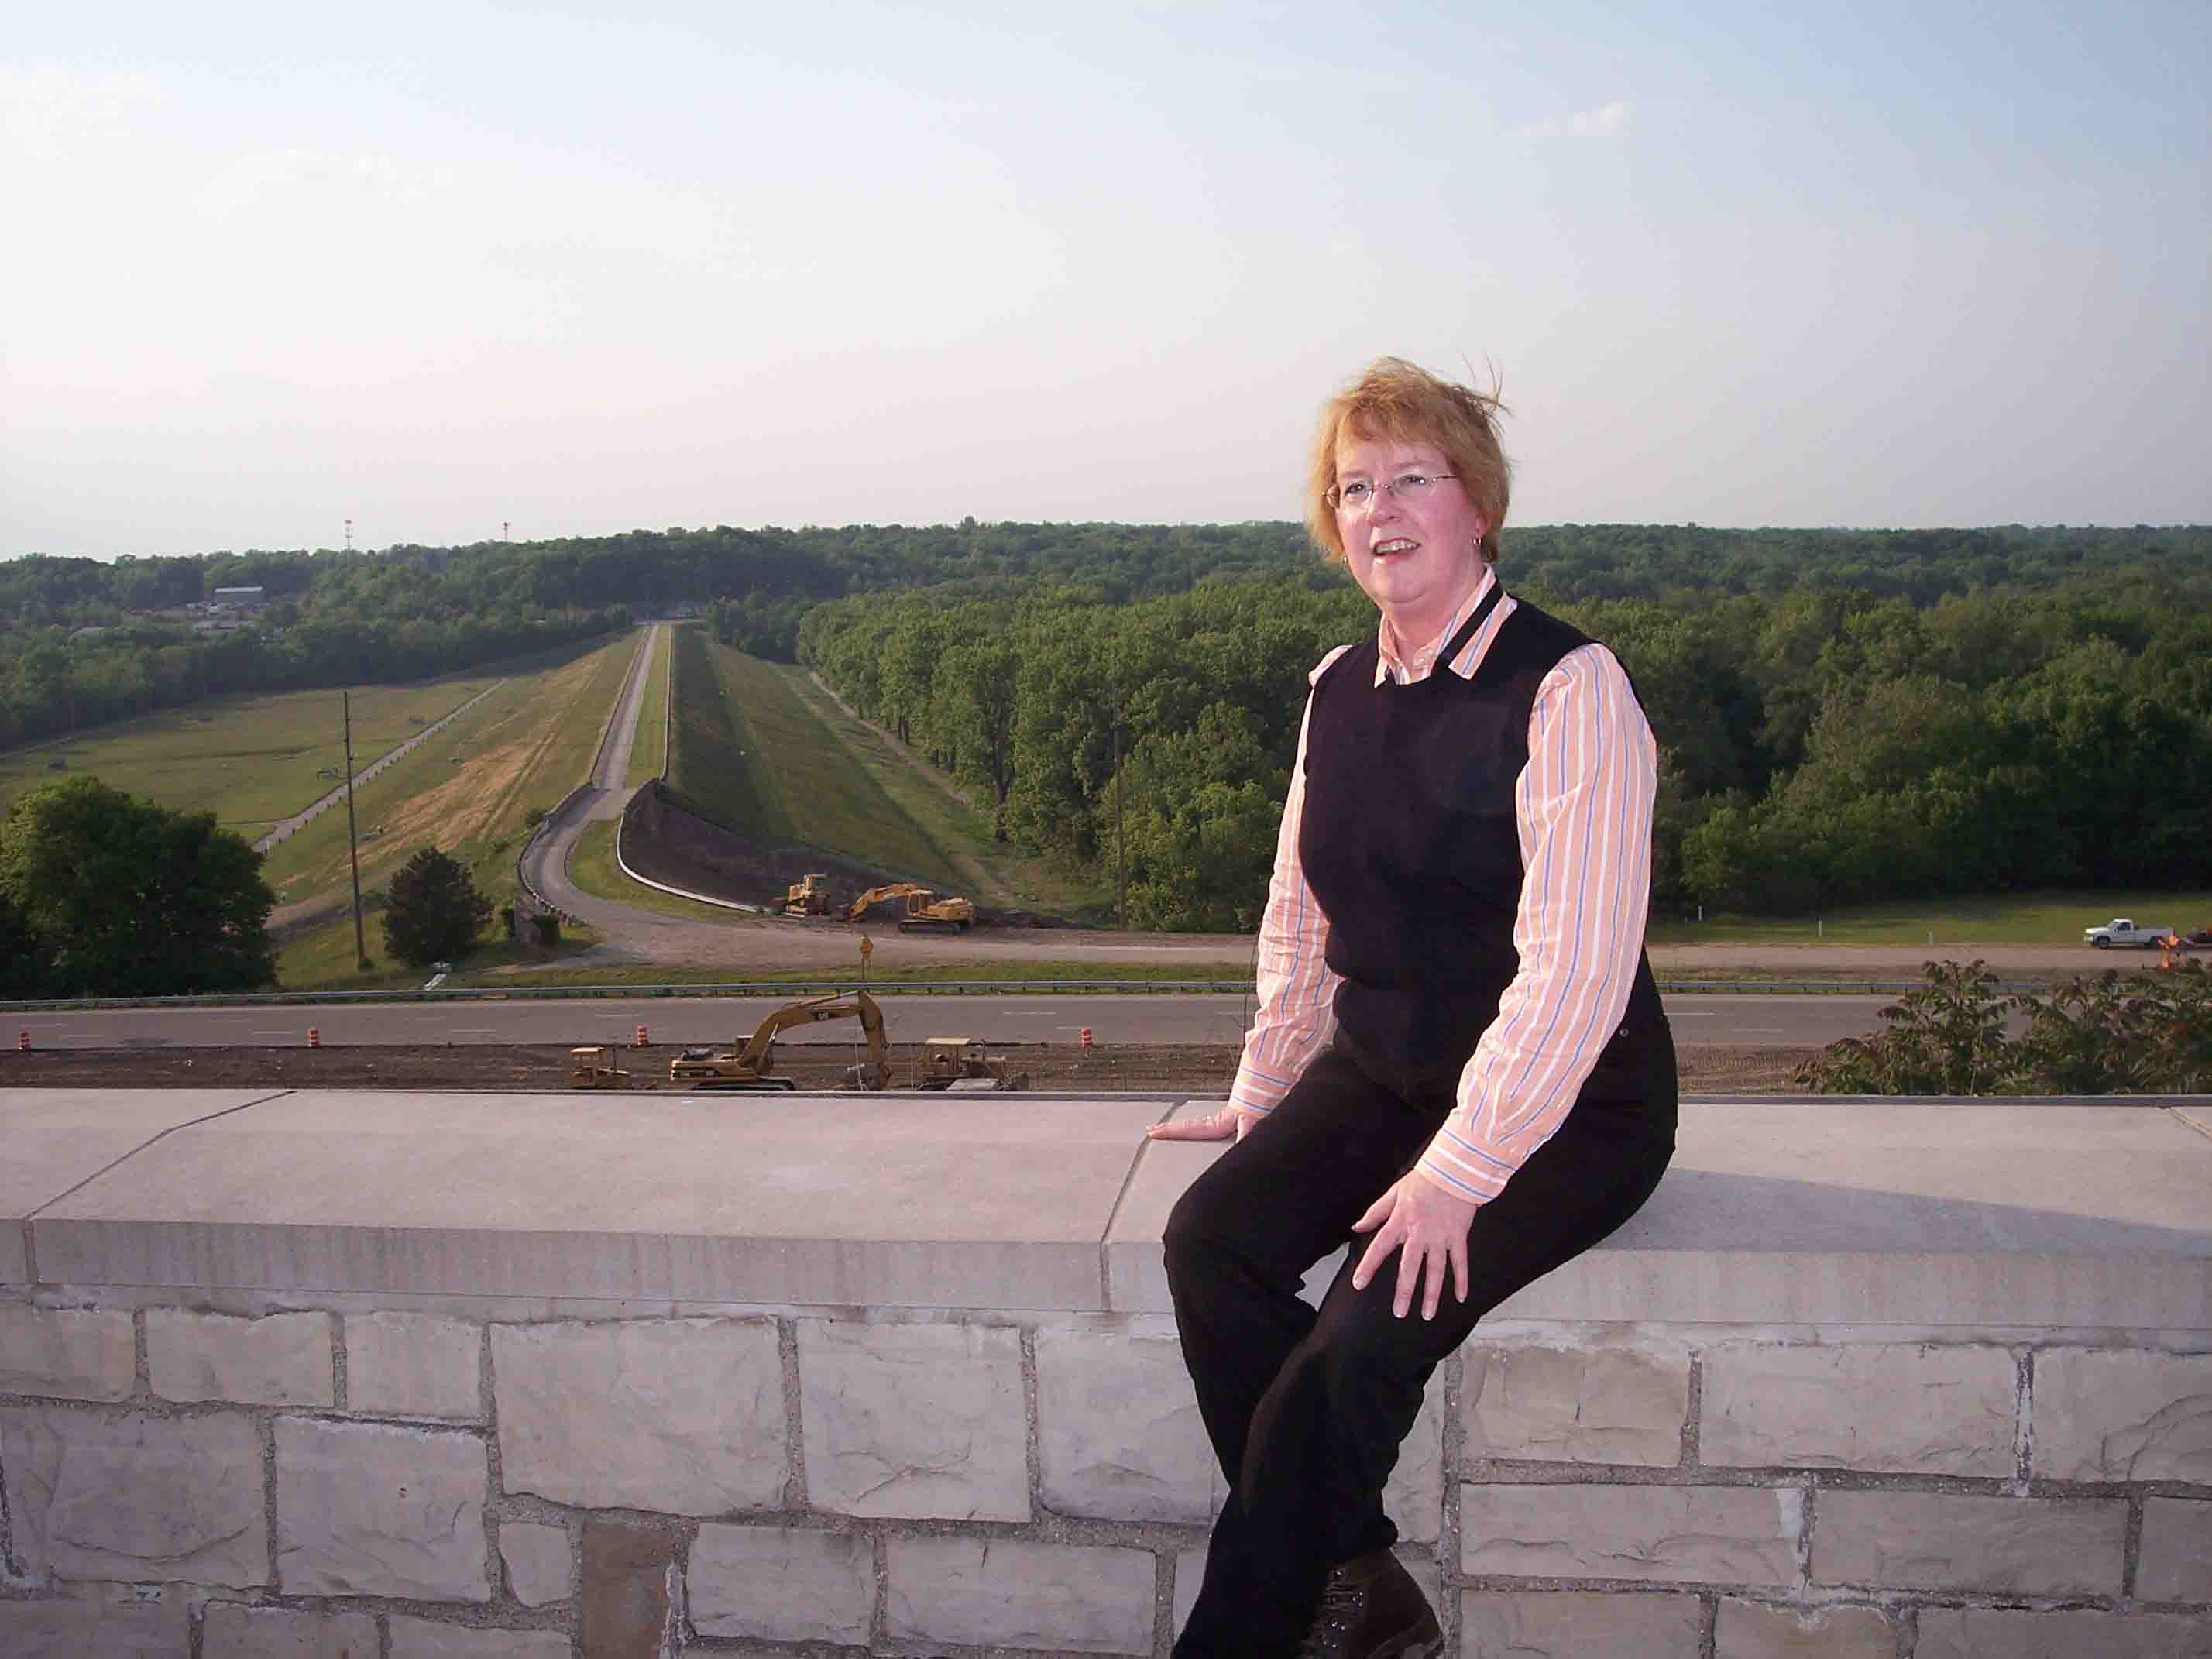 Trudy E. Bell overlooking Huffman Dam dry detention flood control basin north of Dayton, Ohio